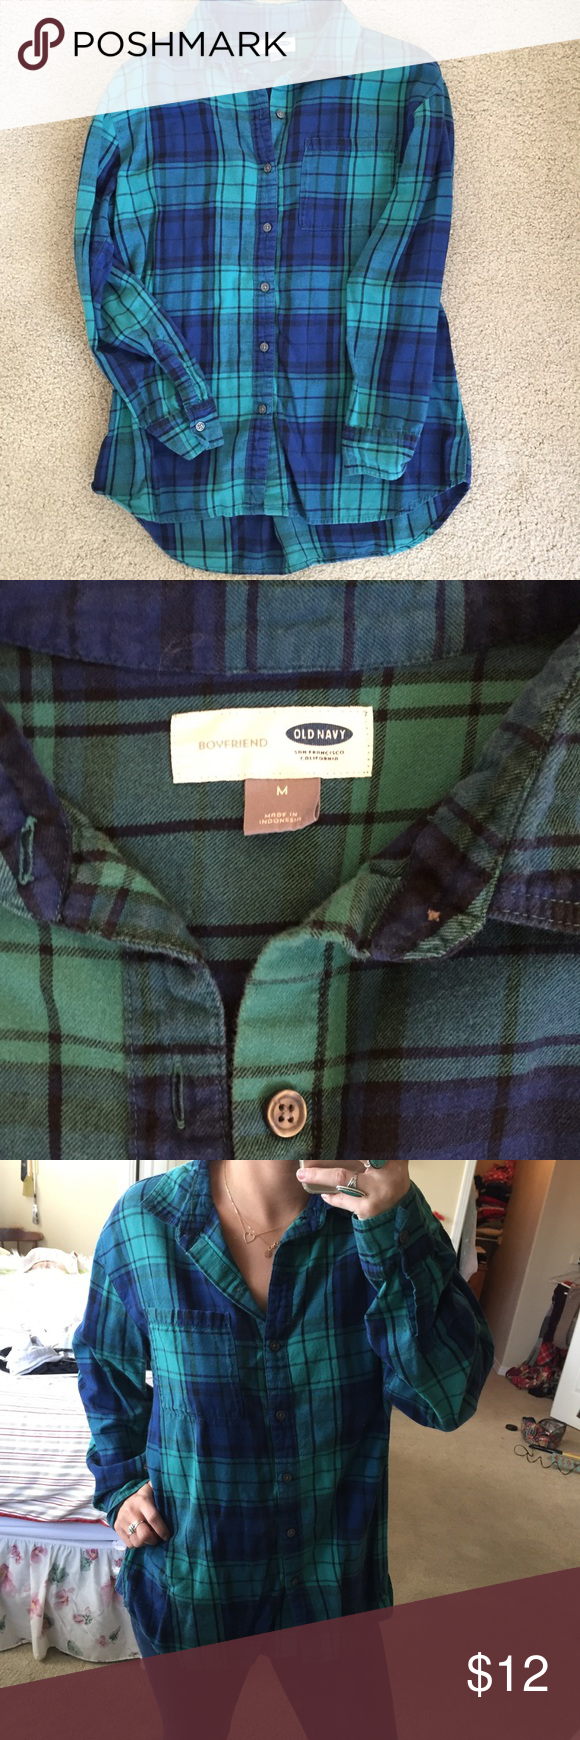 Dress up flannel shirt  Blue and Green Flannel Shirt  Green flannel shirt Green flannel